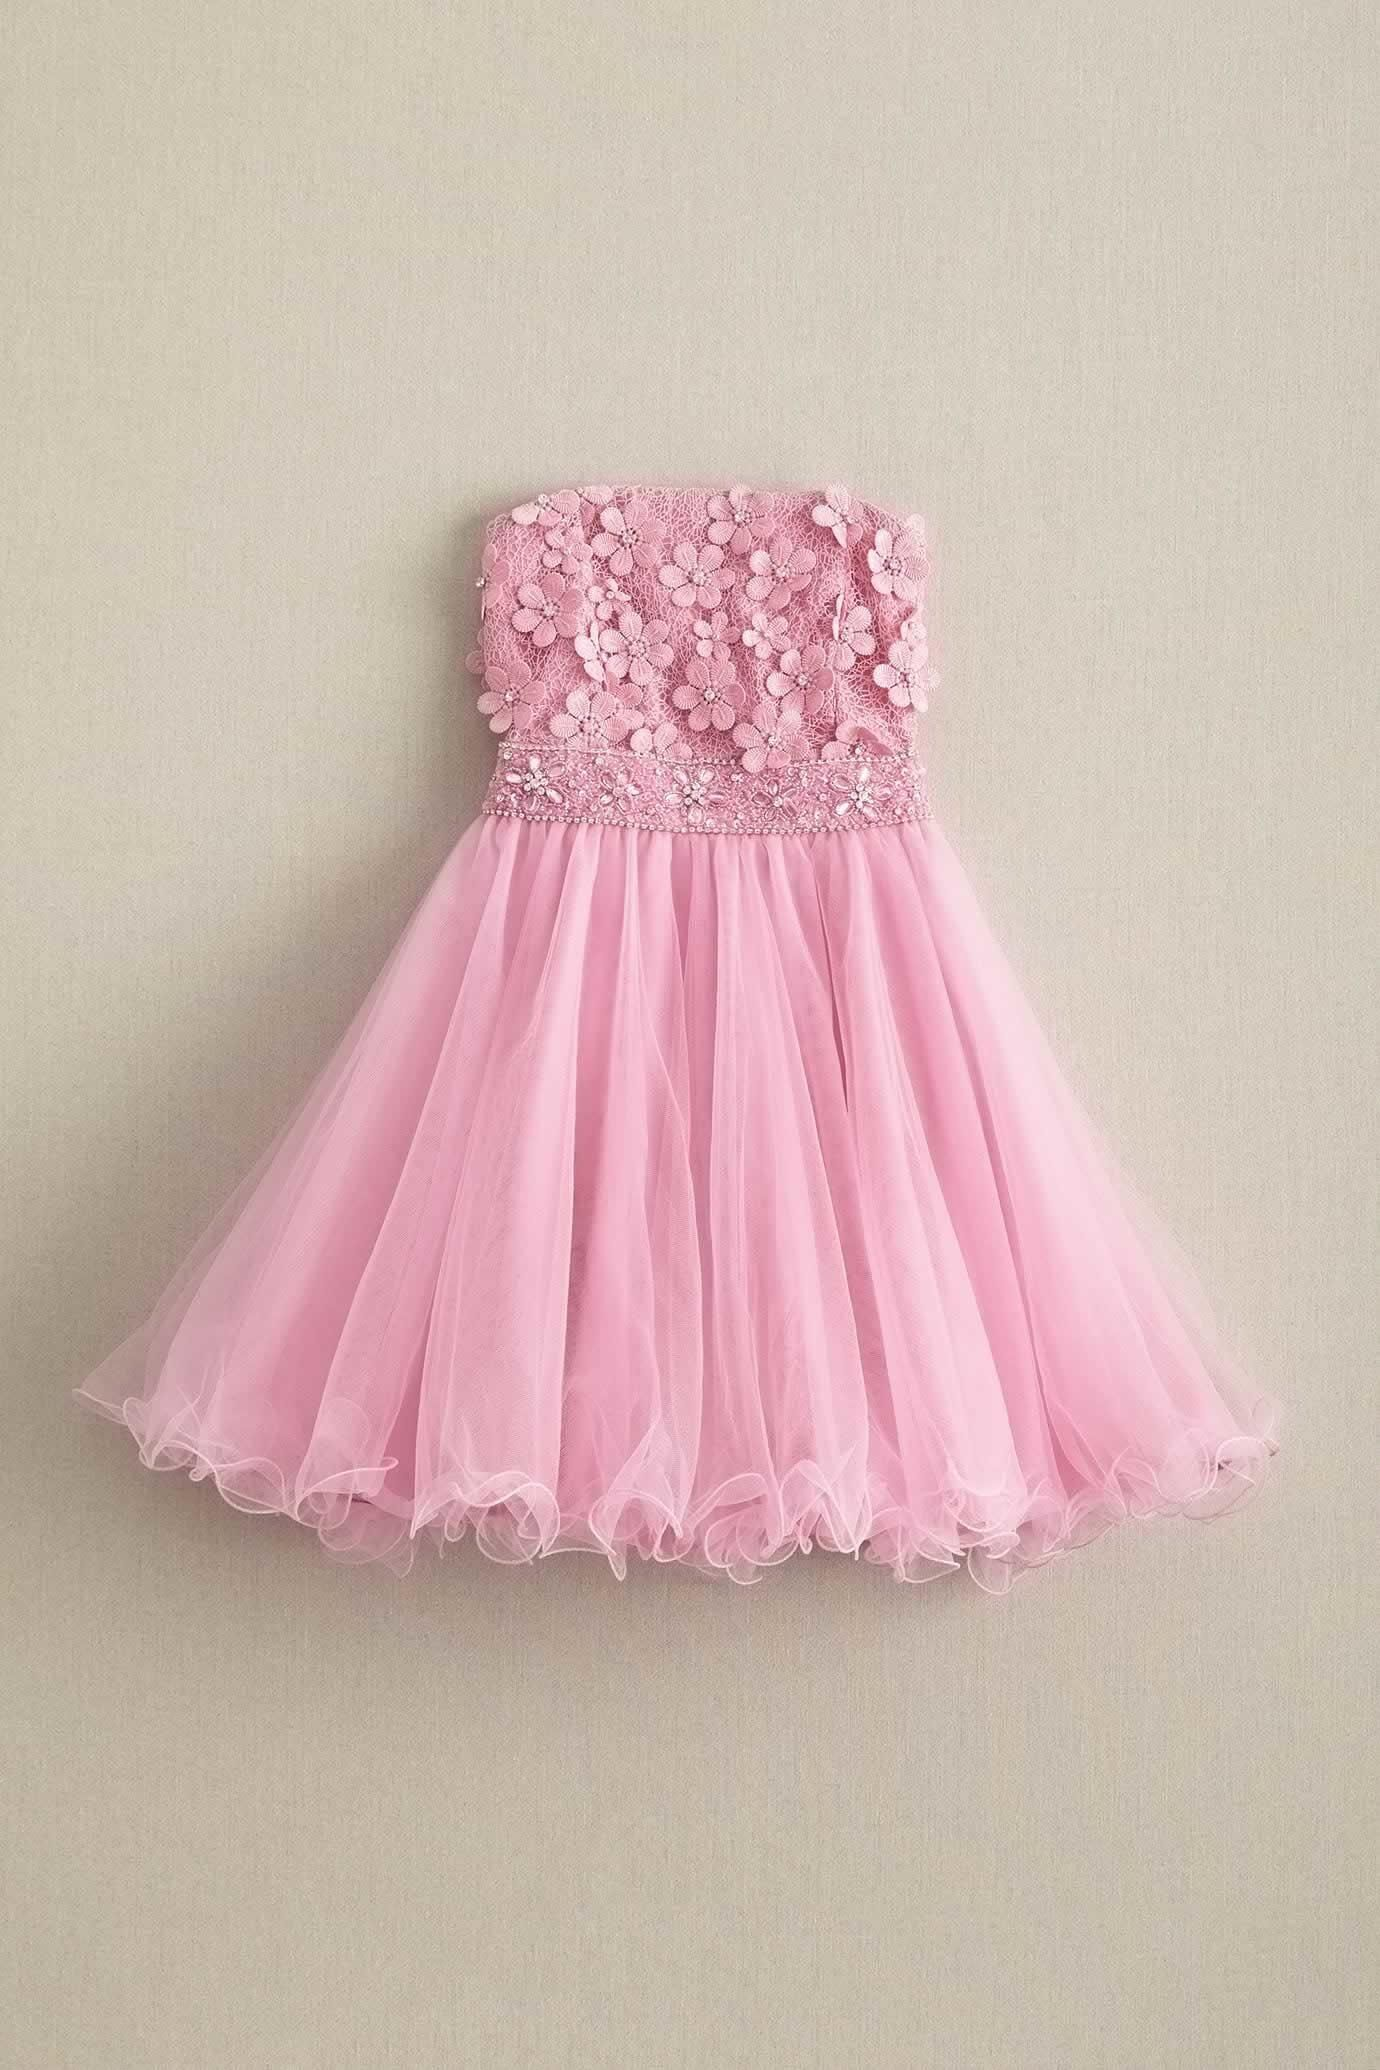 c8ae962872497 Girls Pink Blossom Dress | AMG FANCY DRESSES IV | Dresses, Baby girl ...